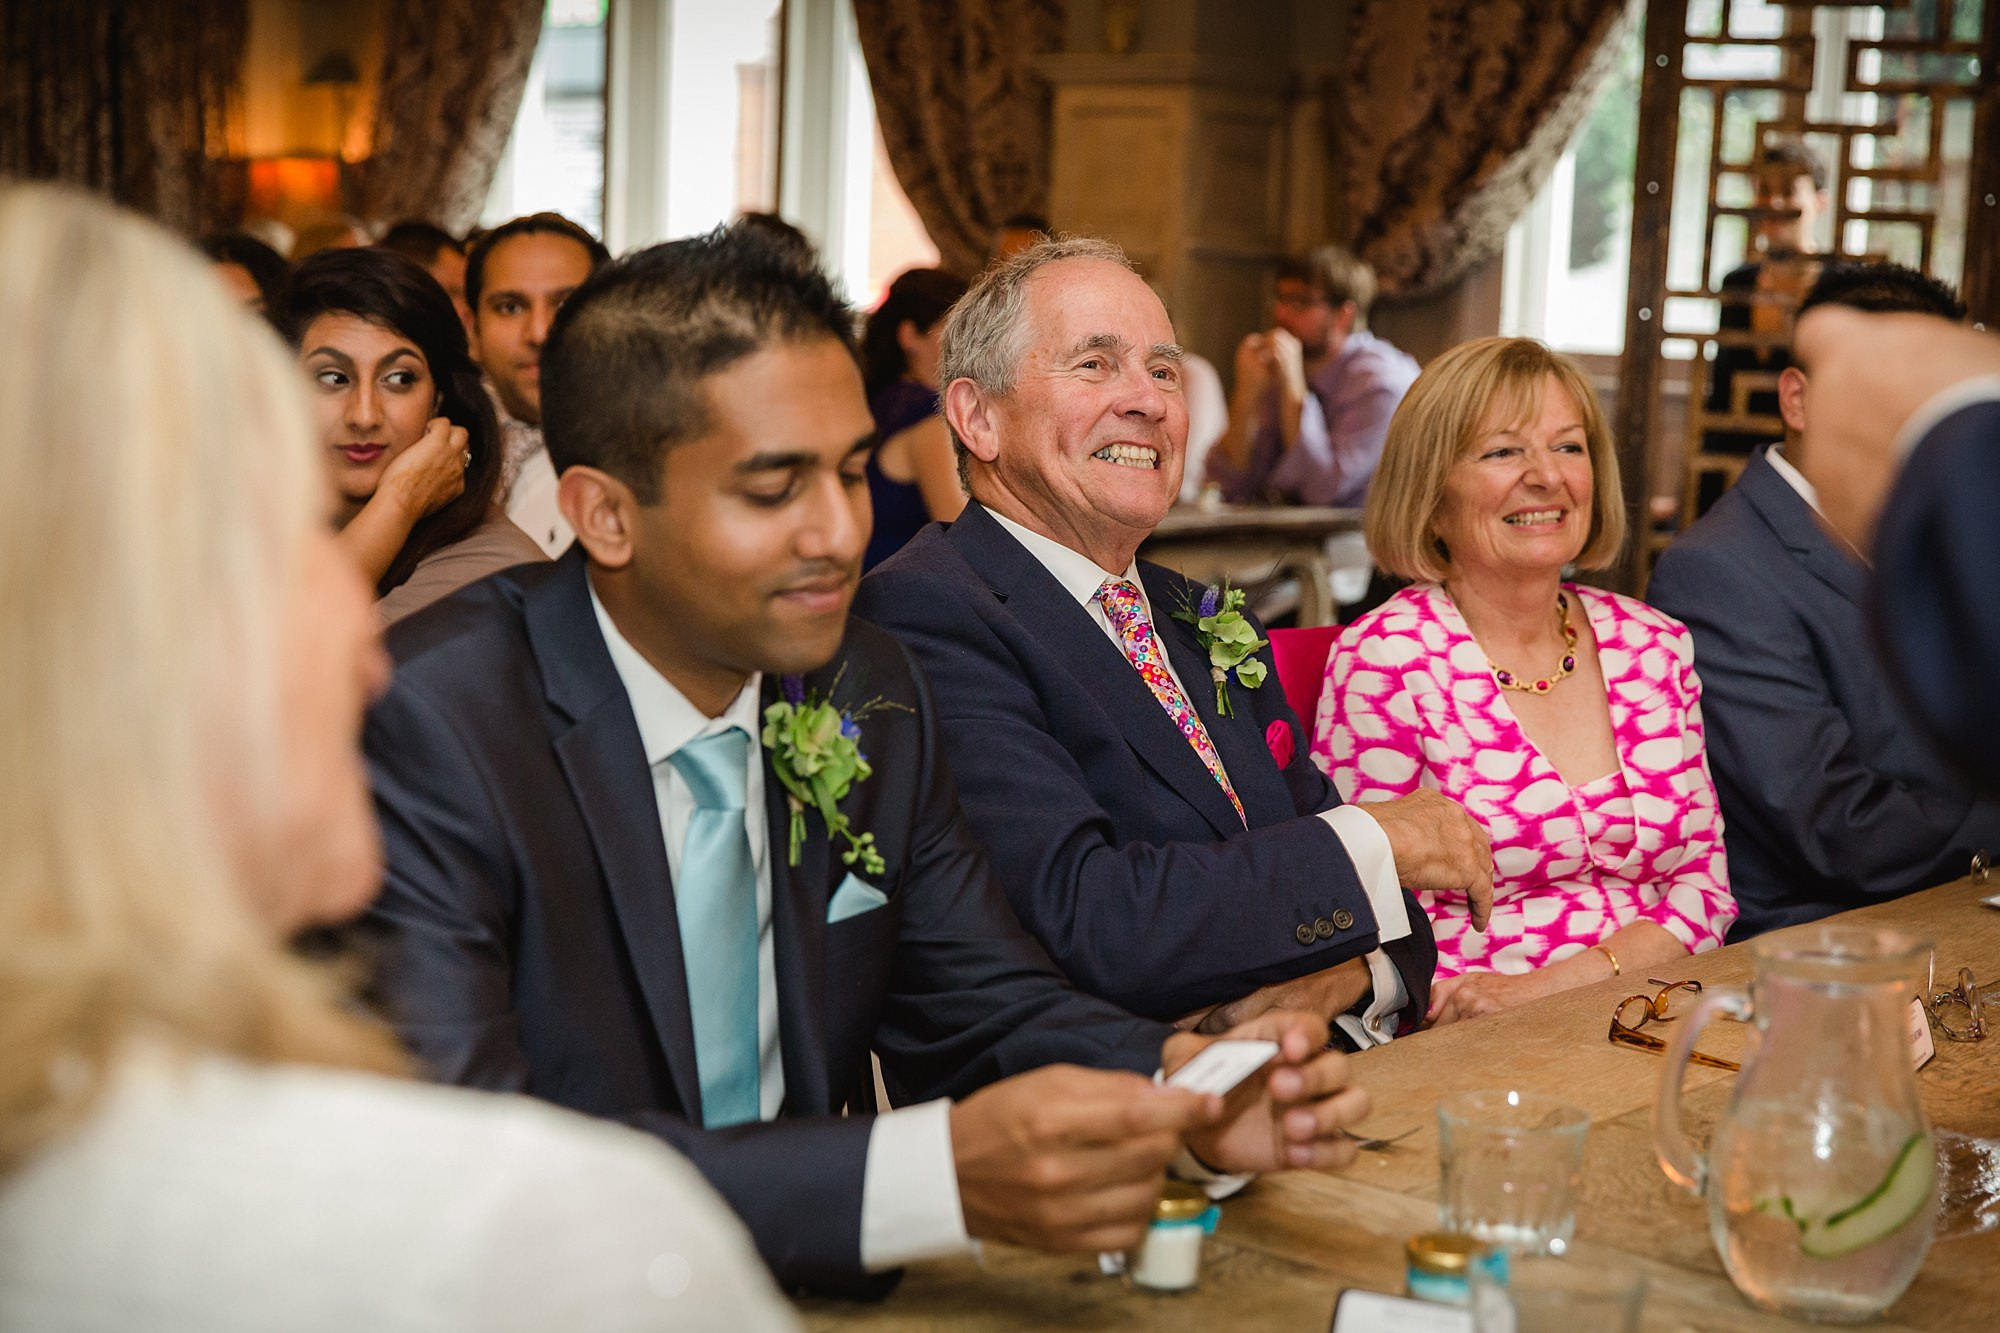 Paradise by way of Kensal Green wedding guests laughing during speech